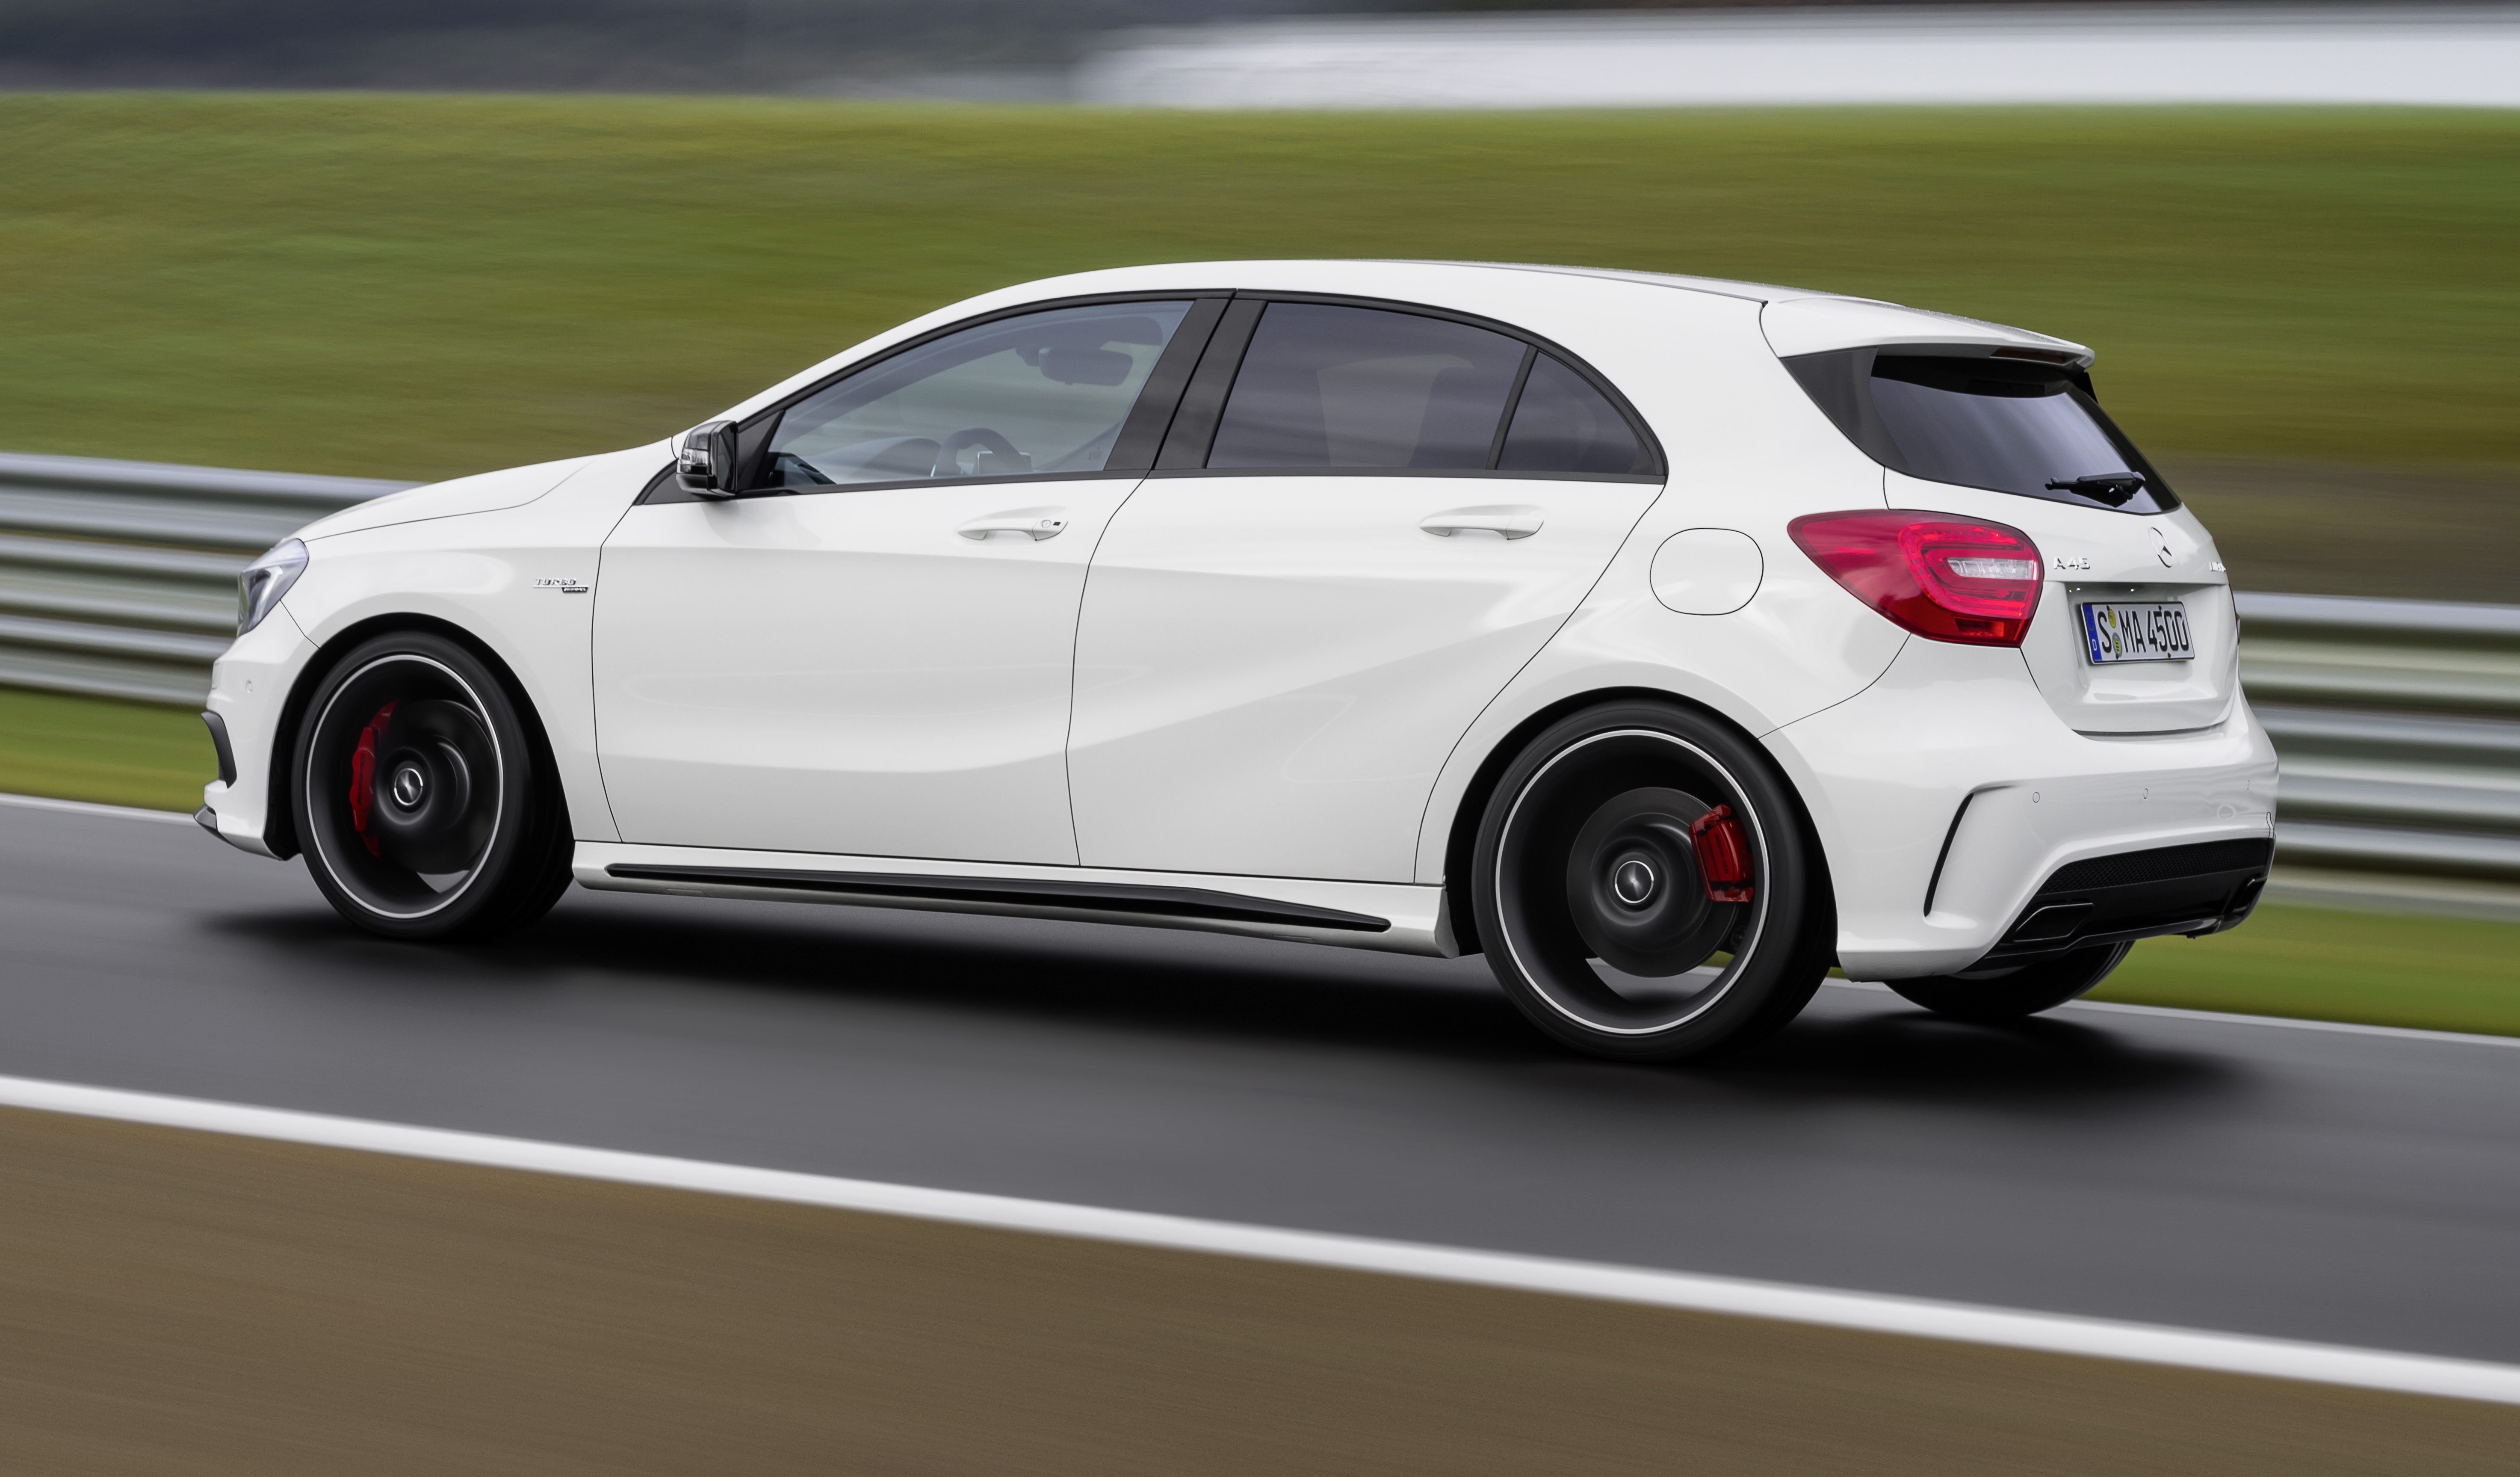 Mercedes benz a 45 amg 360hp 450nm range topper image 154434 for Mercedes benz amg range